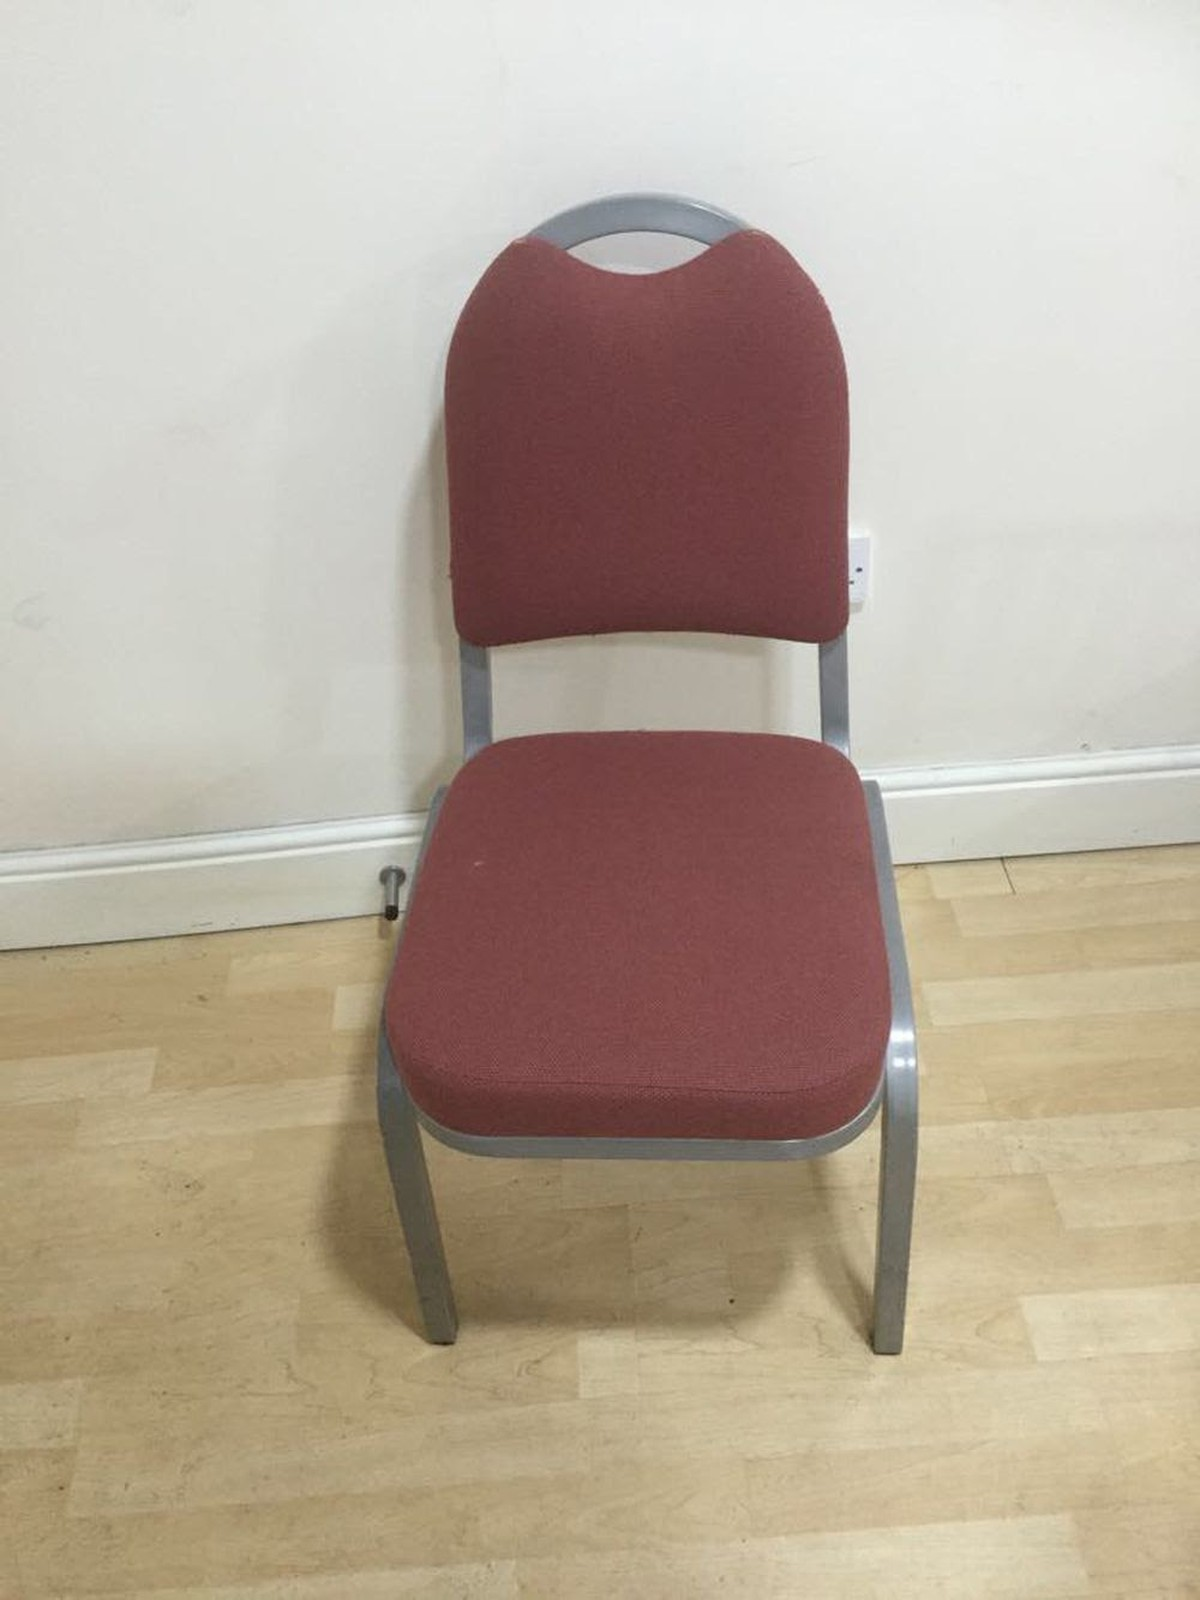 Used Banquet Chairs Secondhand Chairs And Tables Aluminium Framed Banqueting Chairs